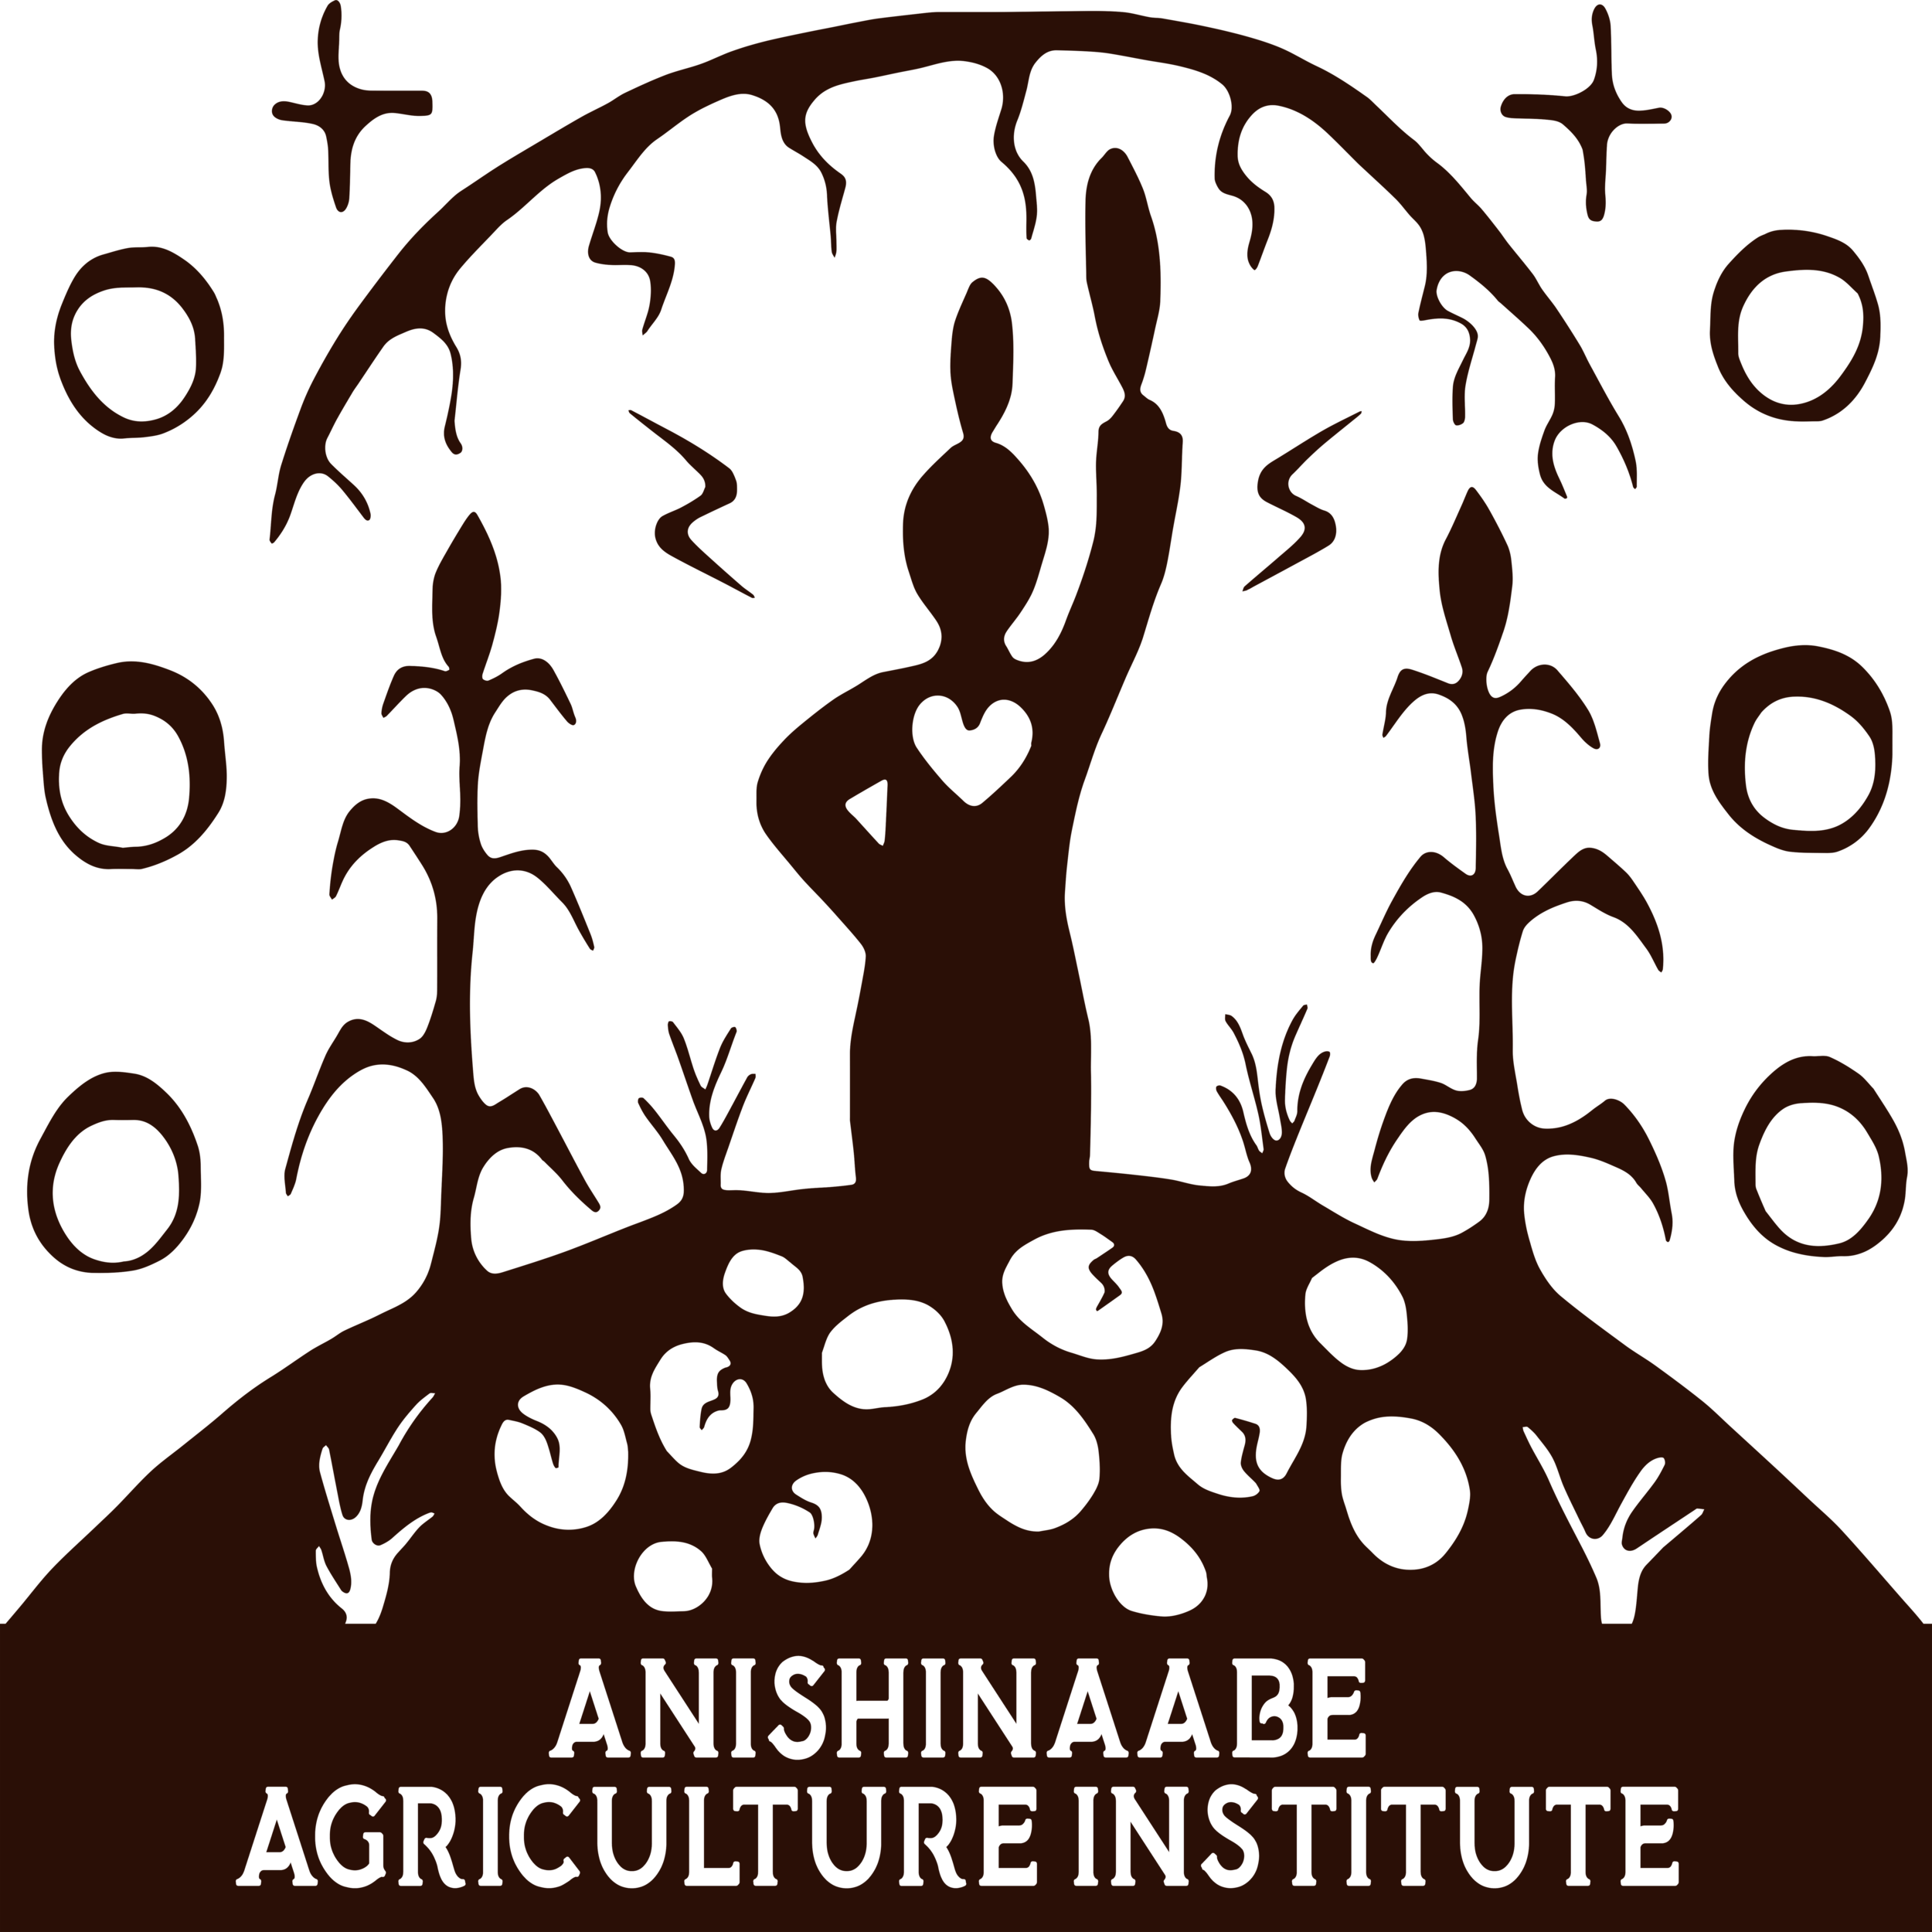 AnishinaabeAgricultureInstitute - The Anishinaabe Agricultural Institute is working to restore agro-biodiversity, through restoring local food systems, hemp, and traditional heritage varieties. We are focused on regenerative and reduced petroleum agriculture.